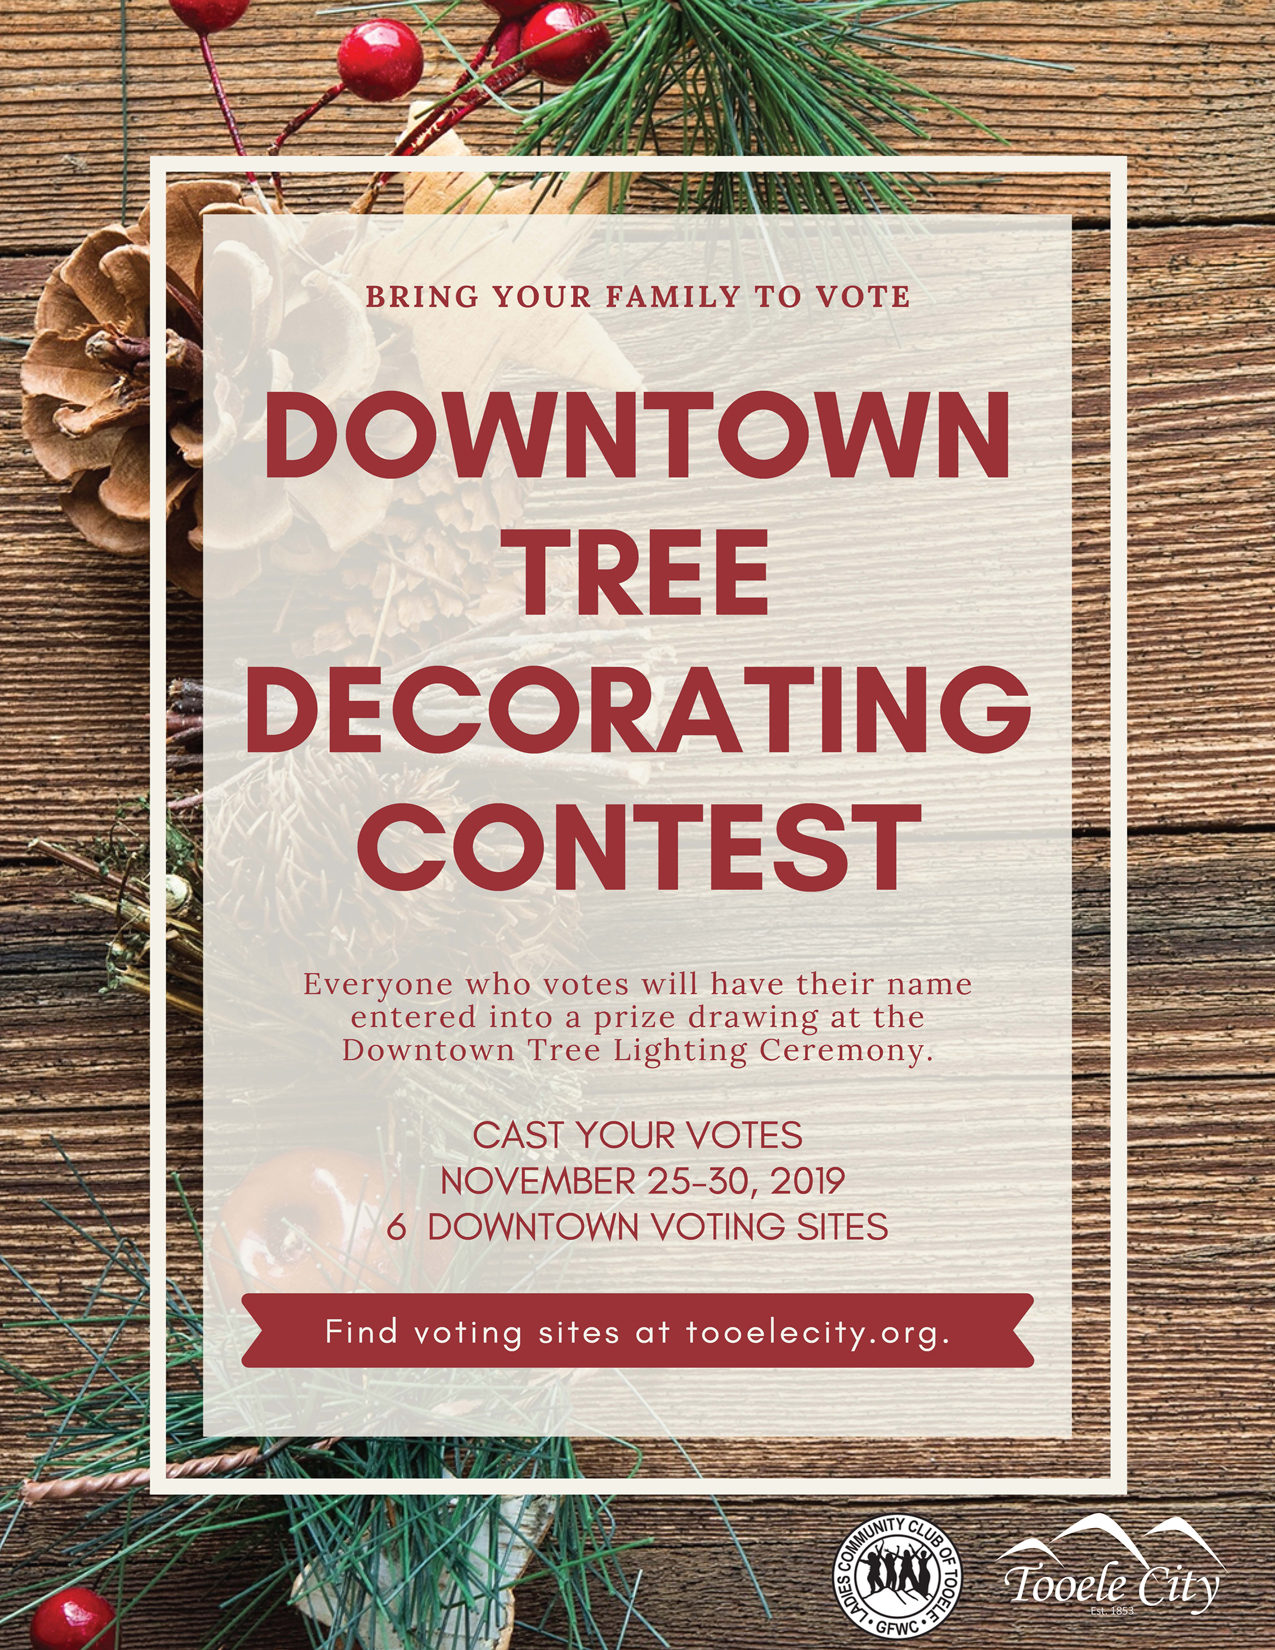 Downtown Tree Decorating Contest 2019